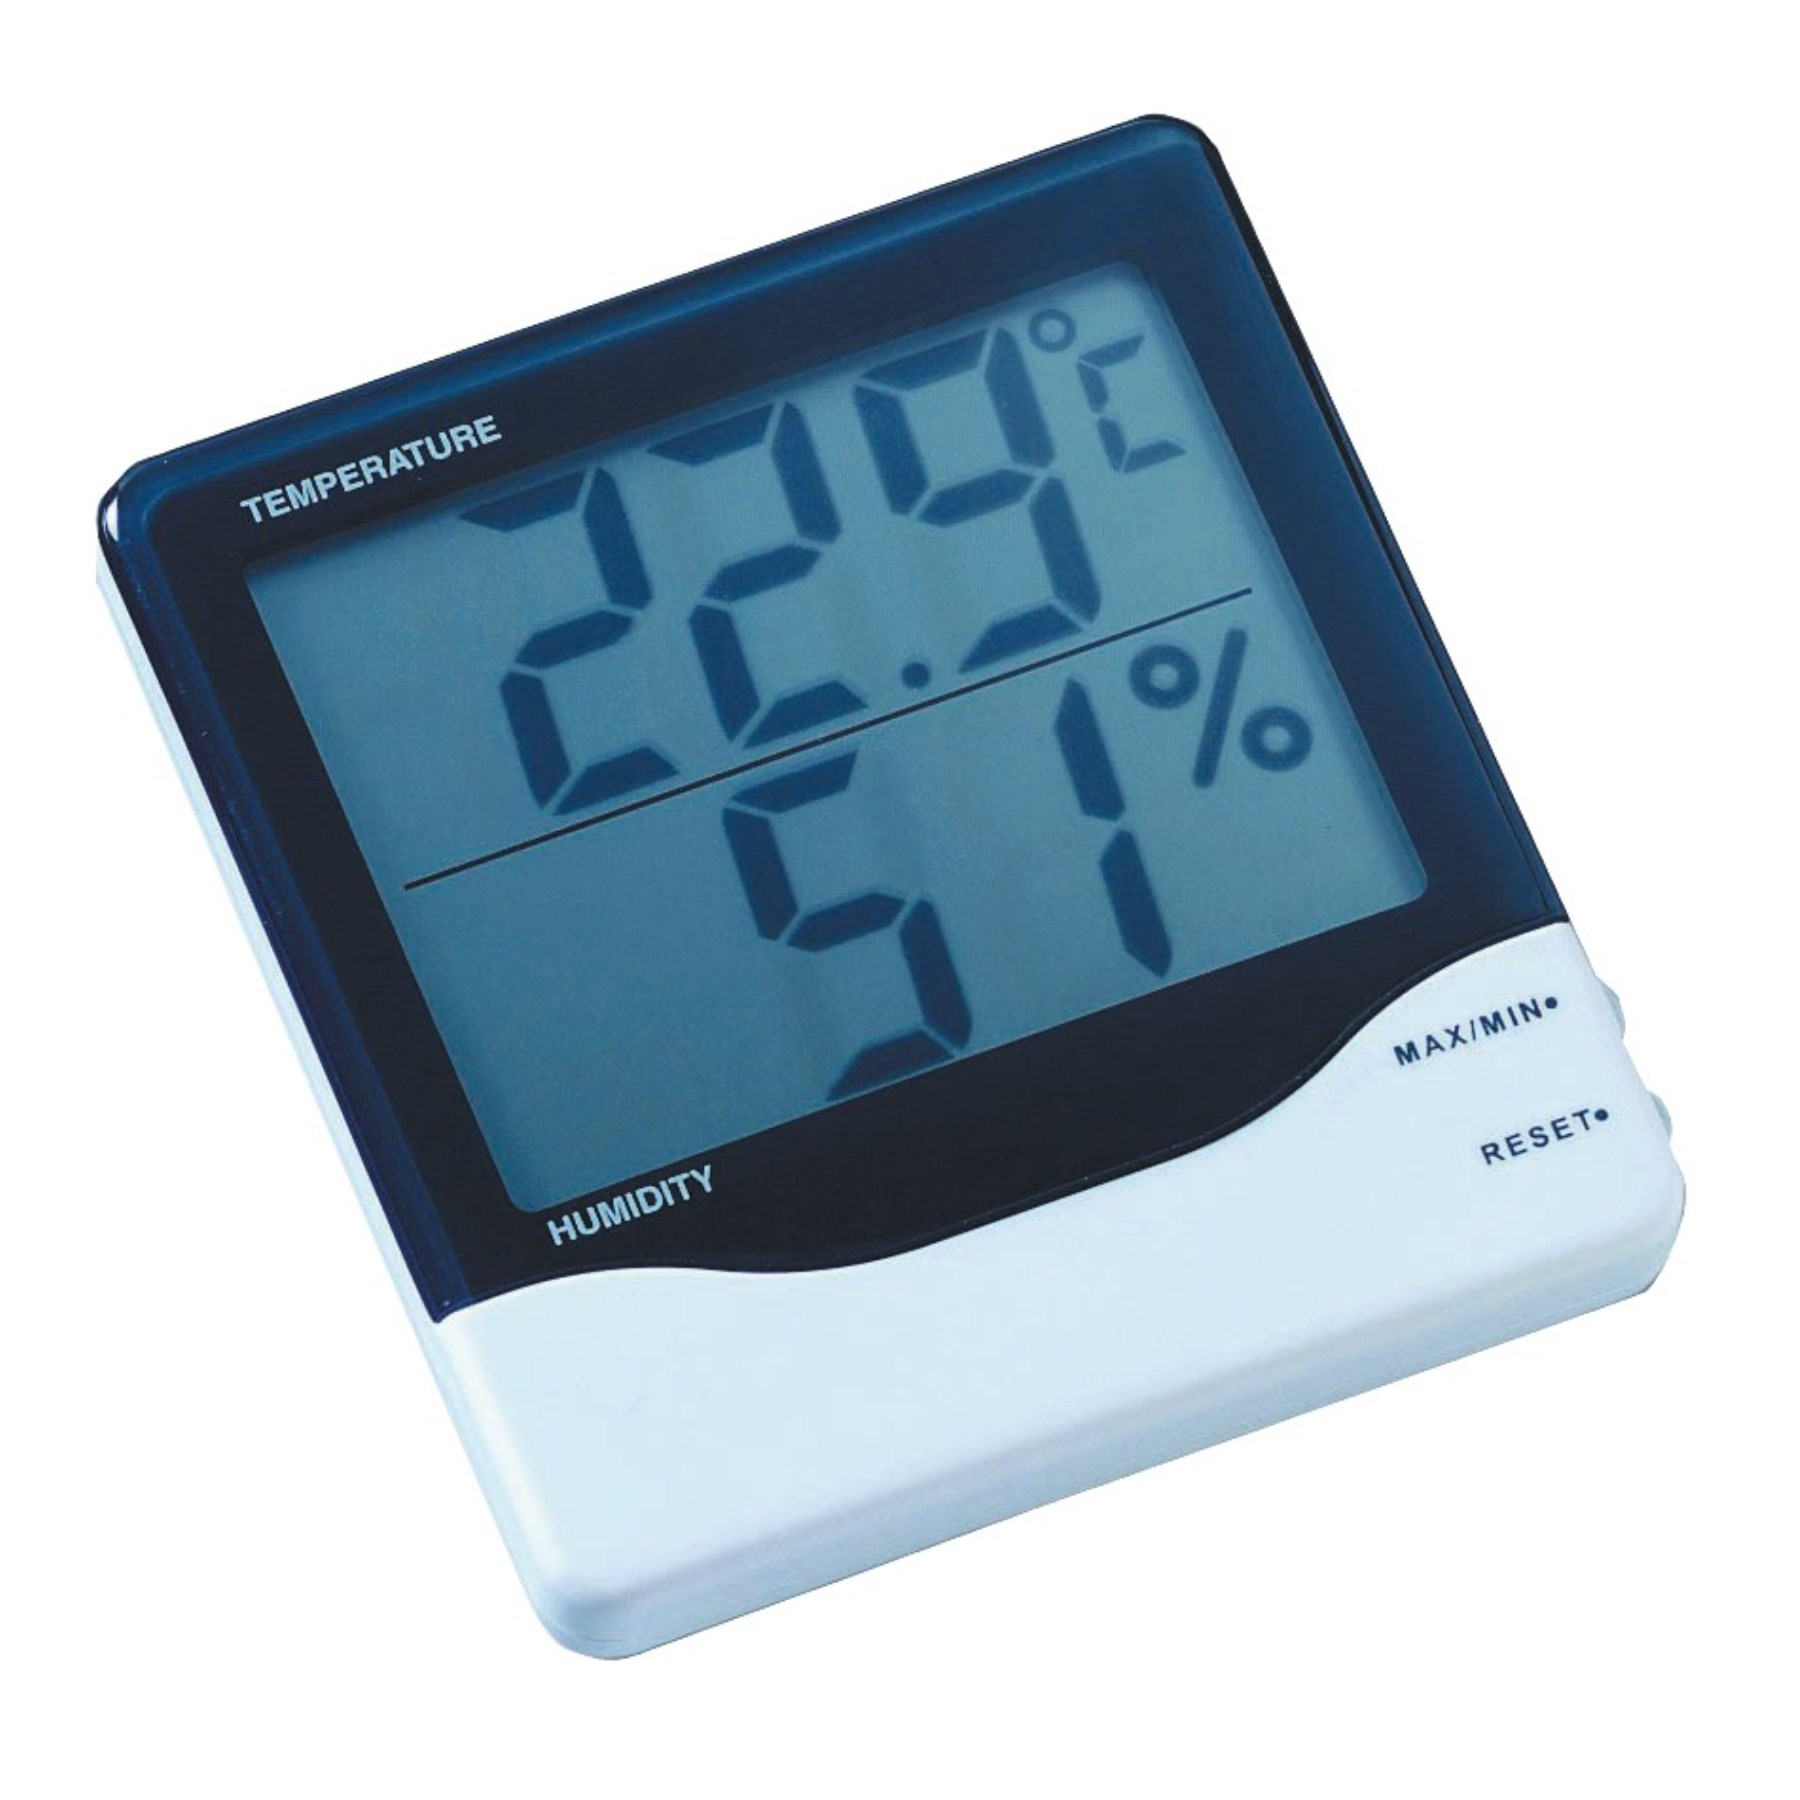 1070912 - Kombithermometer digital Thermo/Hygro 110x95x20mm SB